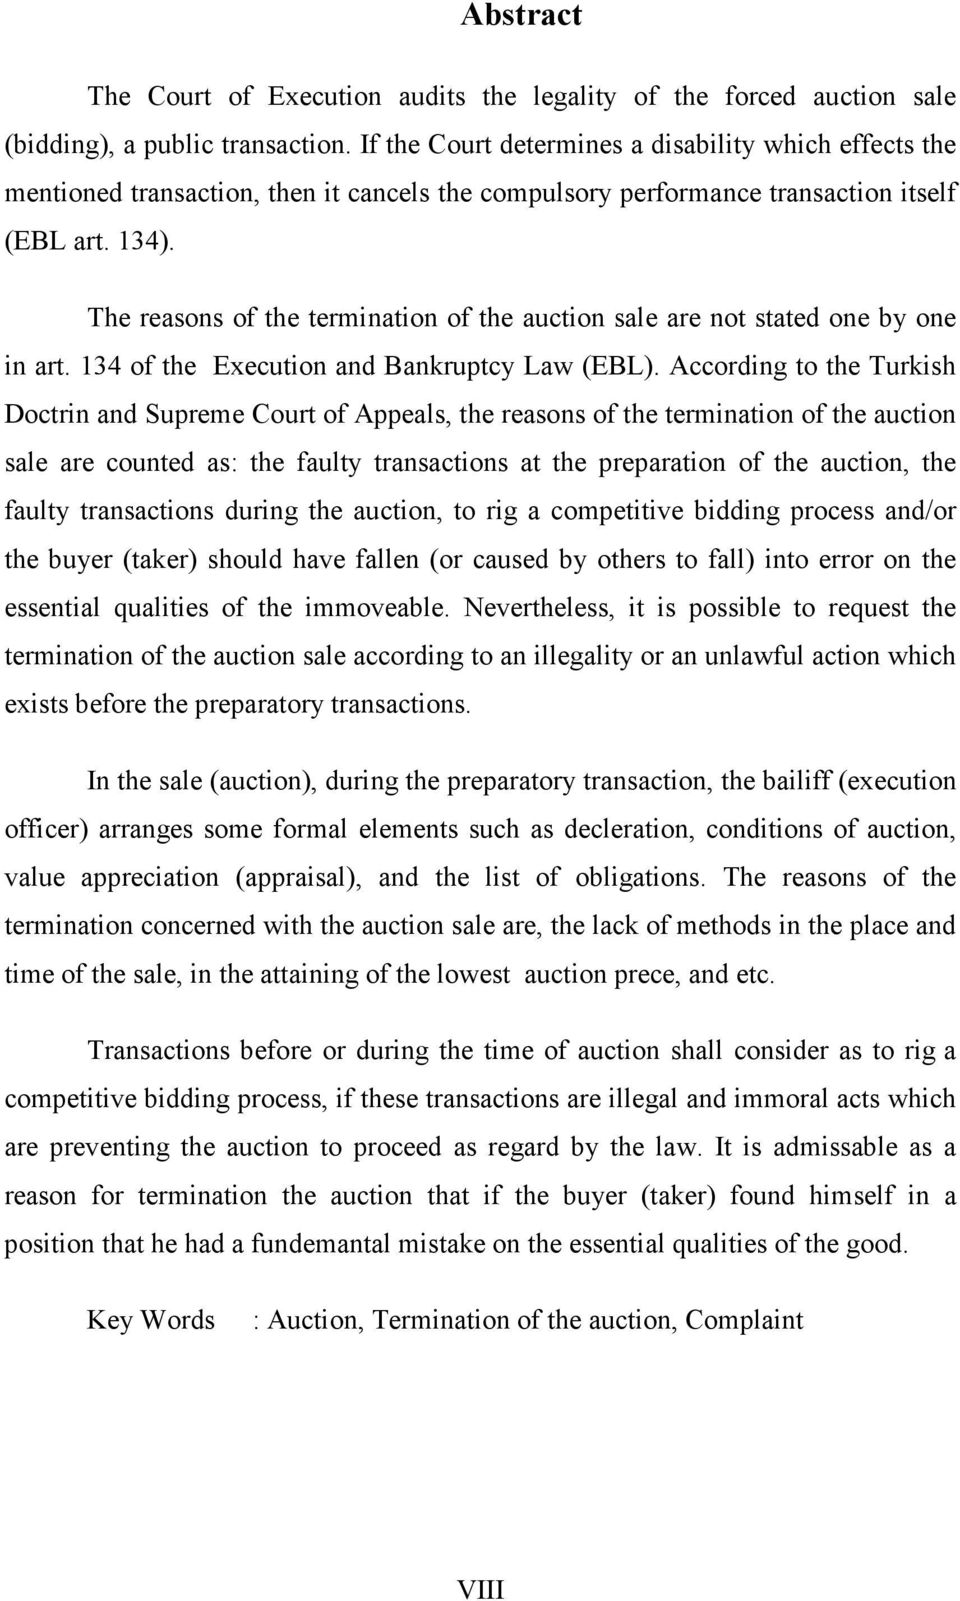 The reasons of the termination of the auction sale are not stated one by one in art. 134 of the Execution and Bankruptcy Law (EBL).